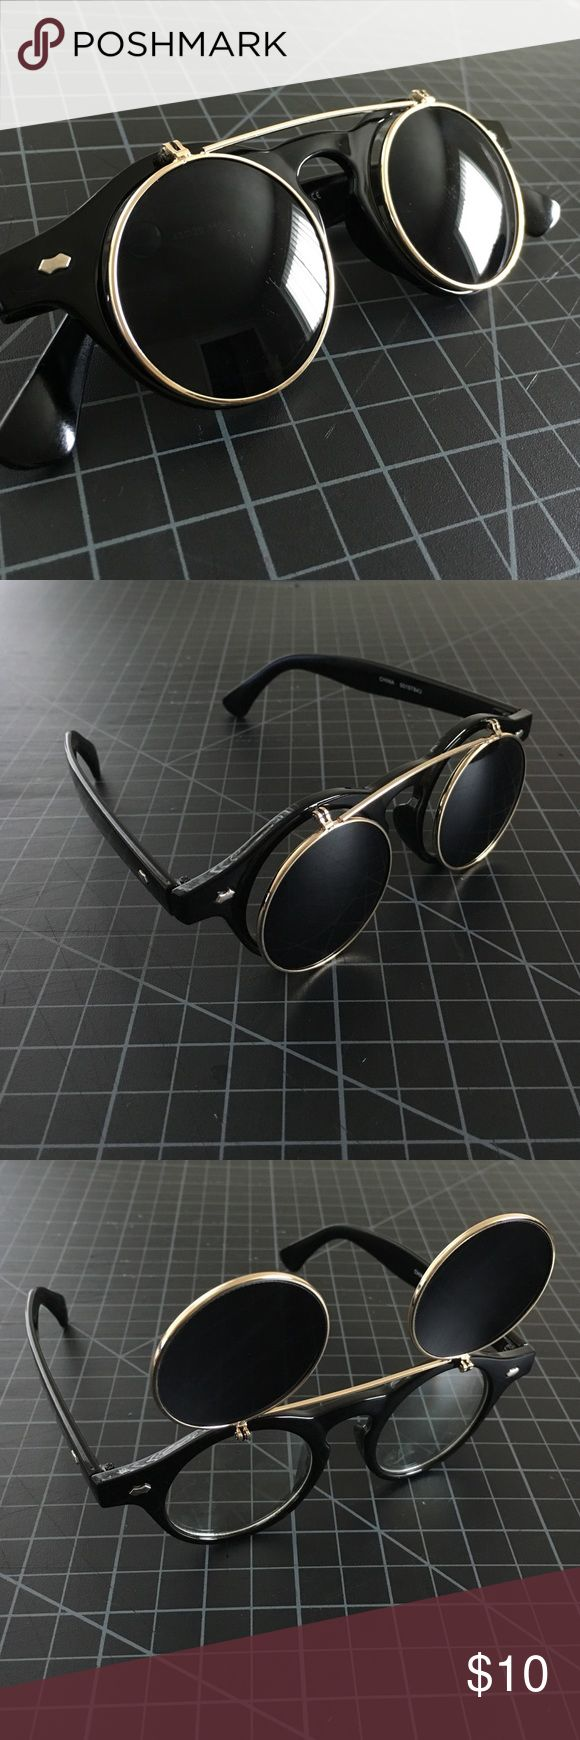 Retro style Flip Up Sunglasses Black sunglasses with flip up gold hinge. Cams be worn as fashion glasses or sunglasses. Forever 21 Accessories Sunglasses